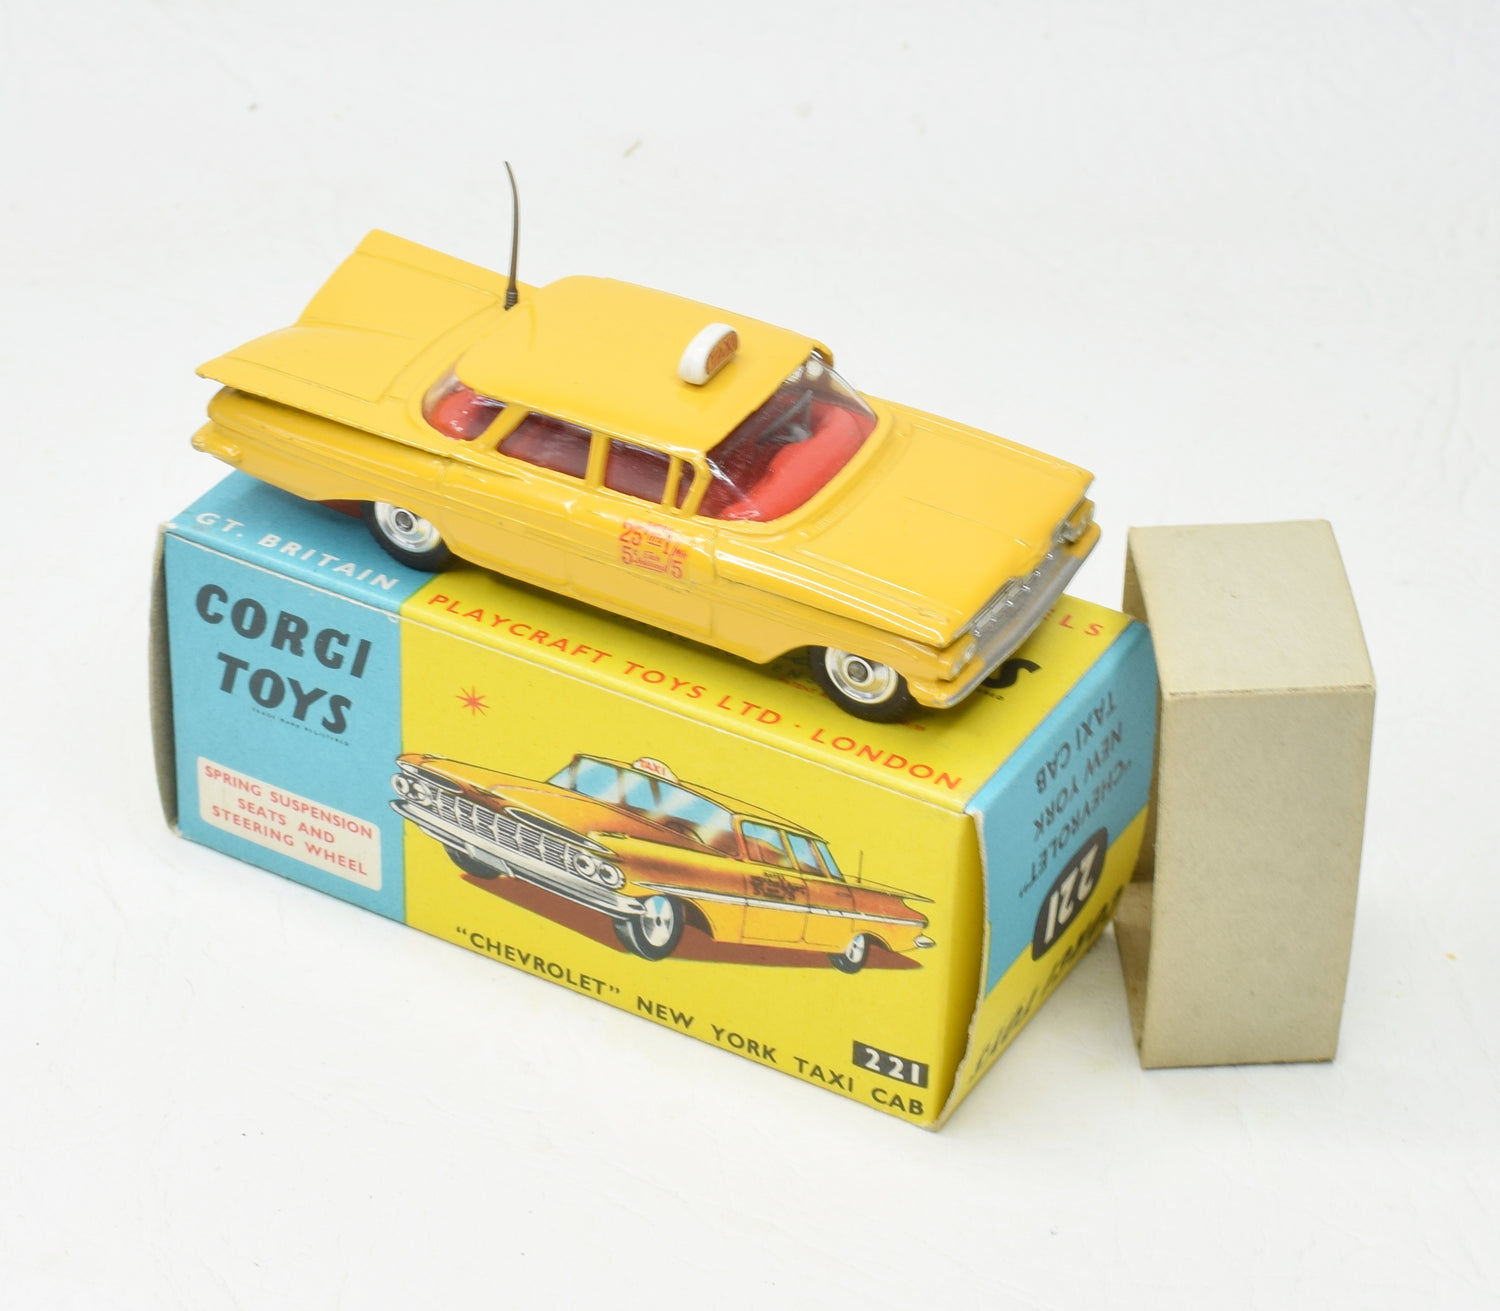 Corgi toys 221 'Chevrolet' New York Taxi Very Near Mint/Boxed The Geneva' Collection